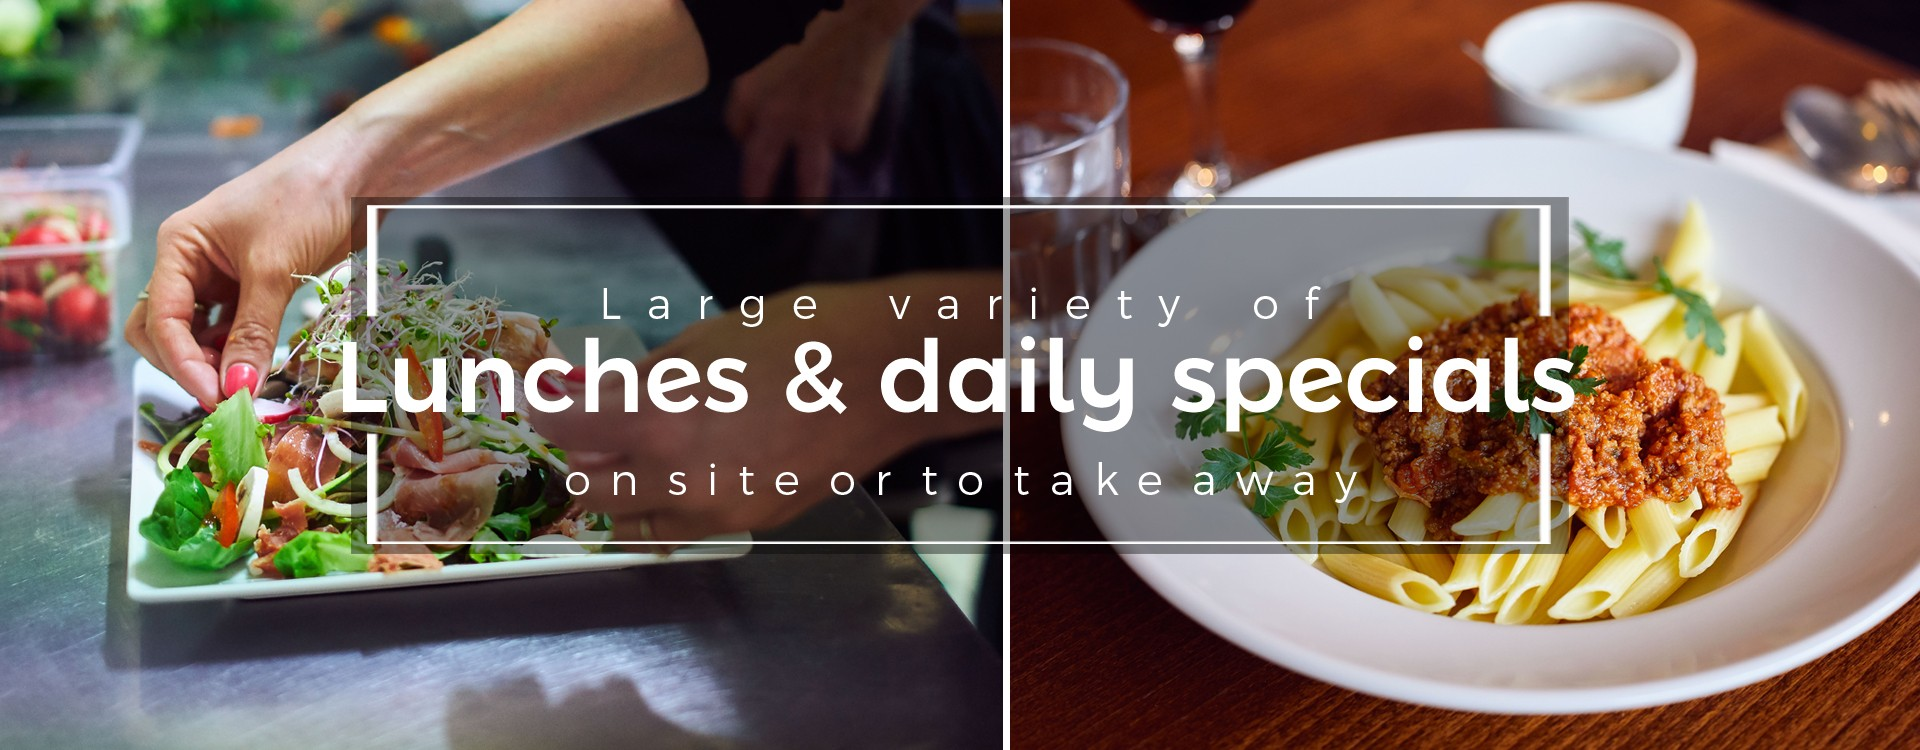 Lunches and daily specials at la place du Chatelain in Brussels